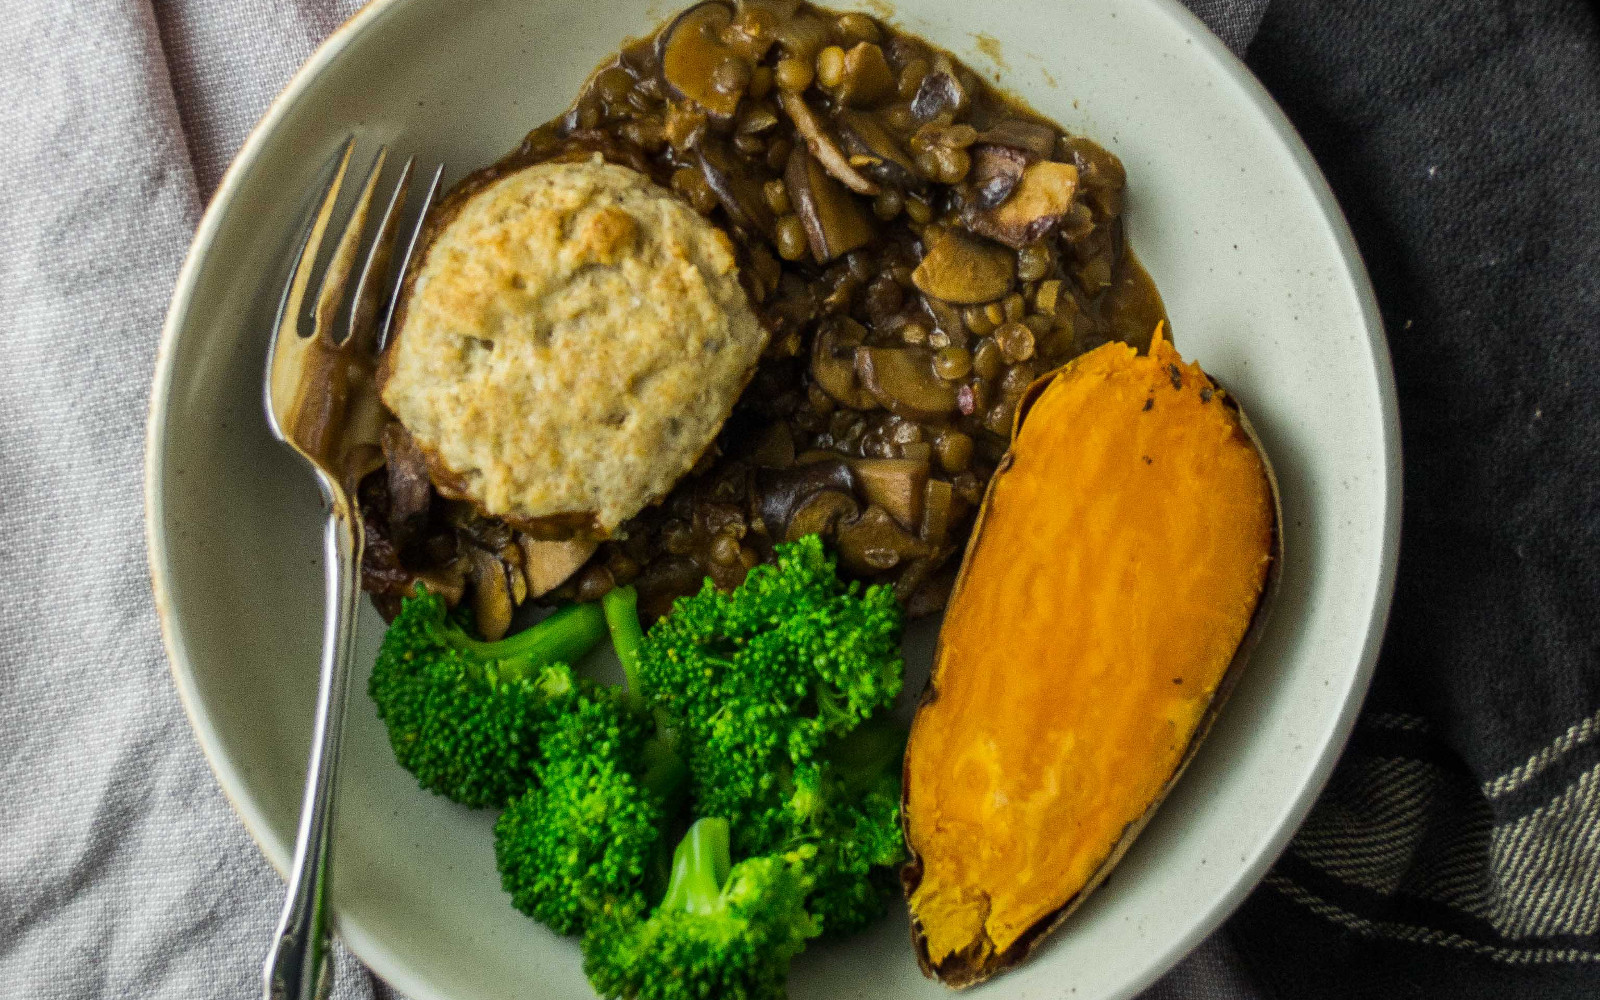 Vegan Deconstructed Mushroom Lentil Pot Pie With Biscuits